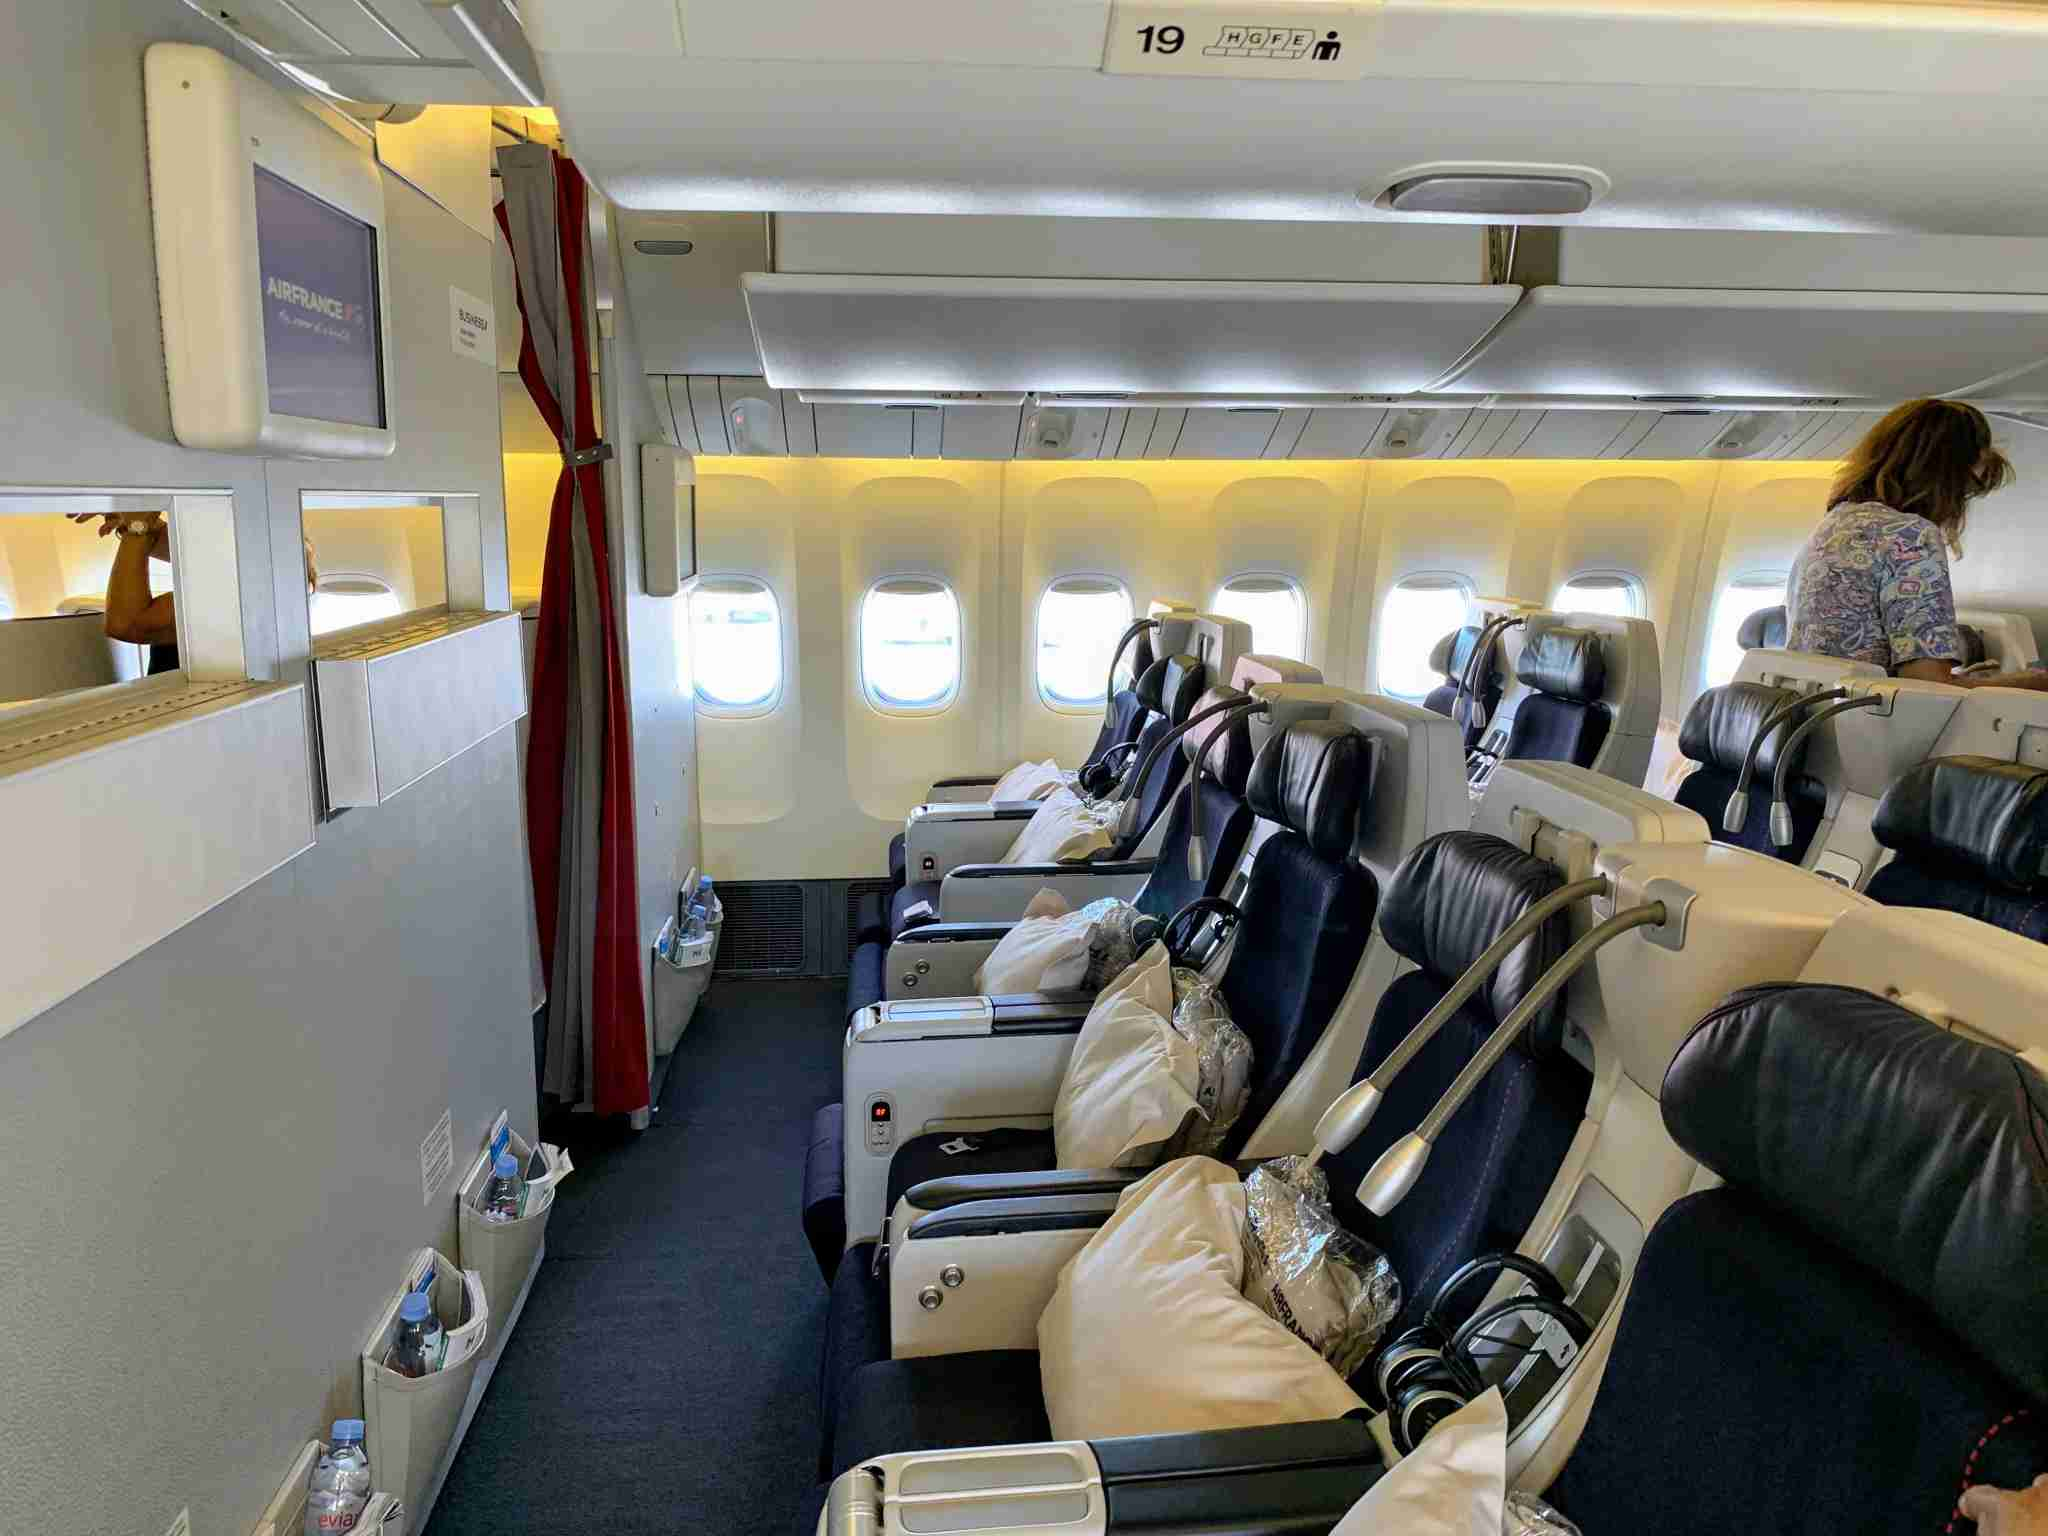 Air France Boeing 777 Premium Economy Bulkhead wall